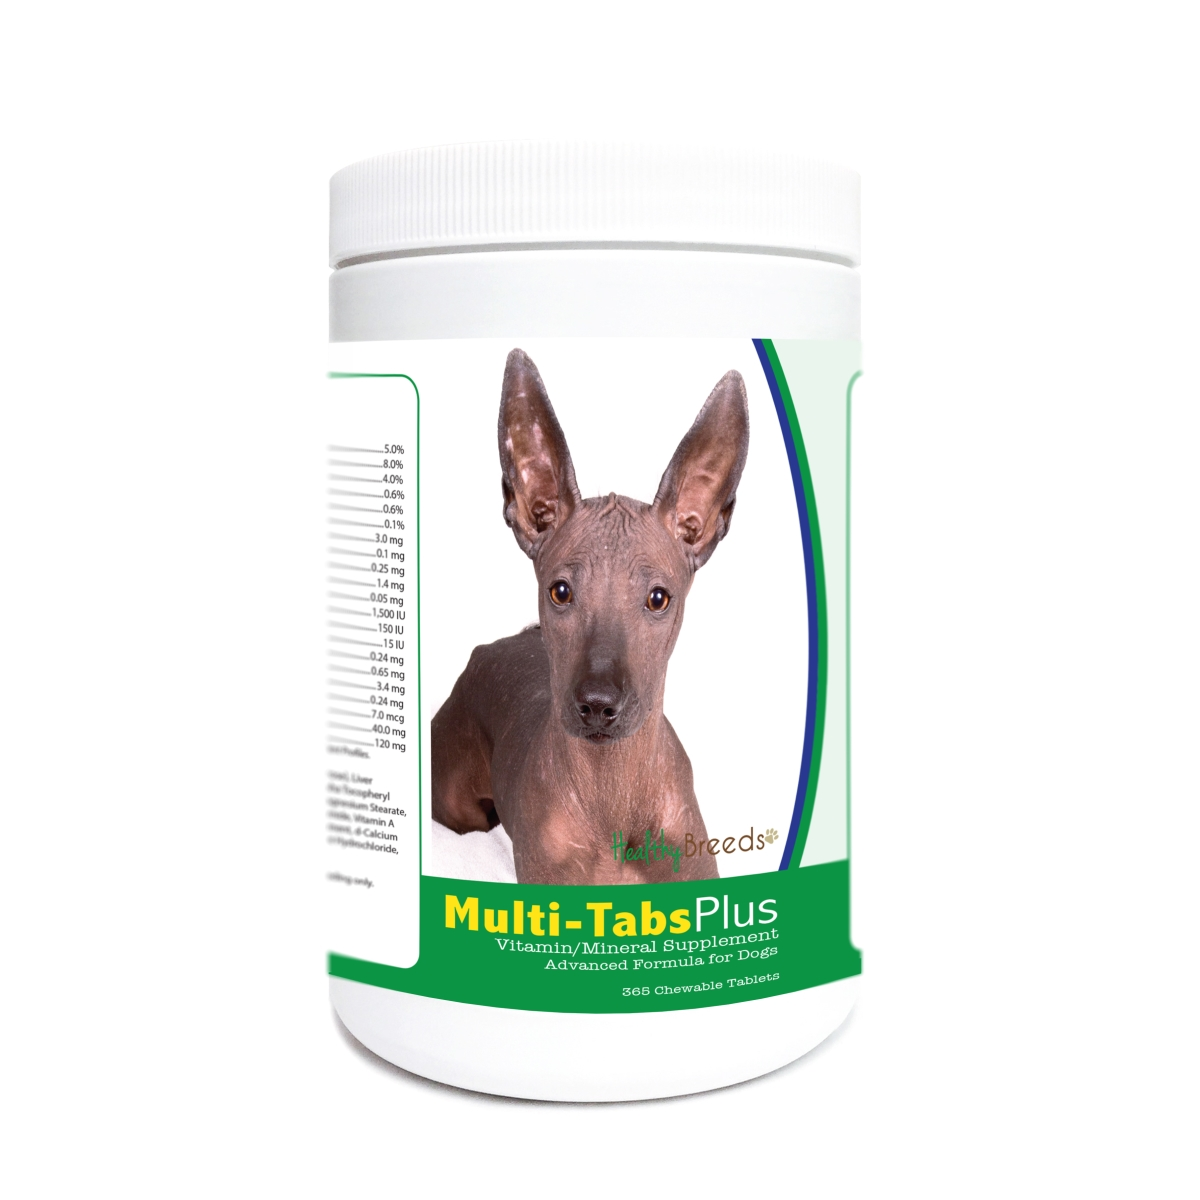 Healthy Breeds 840235178774 Xoloitzcuintli Multi-Tabs Plus Chewable Tablets - 365 Count